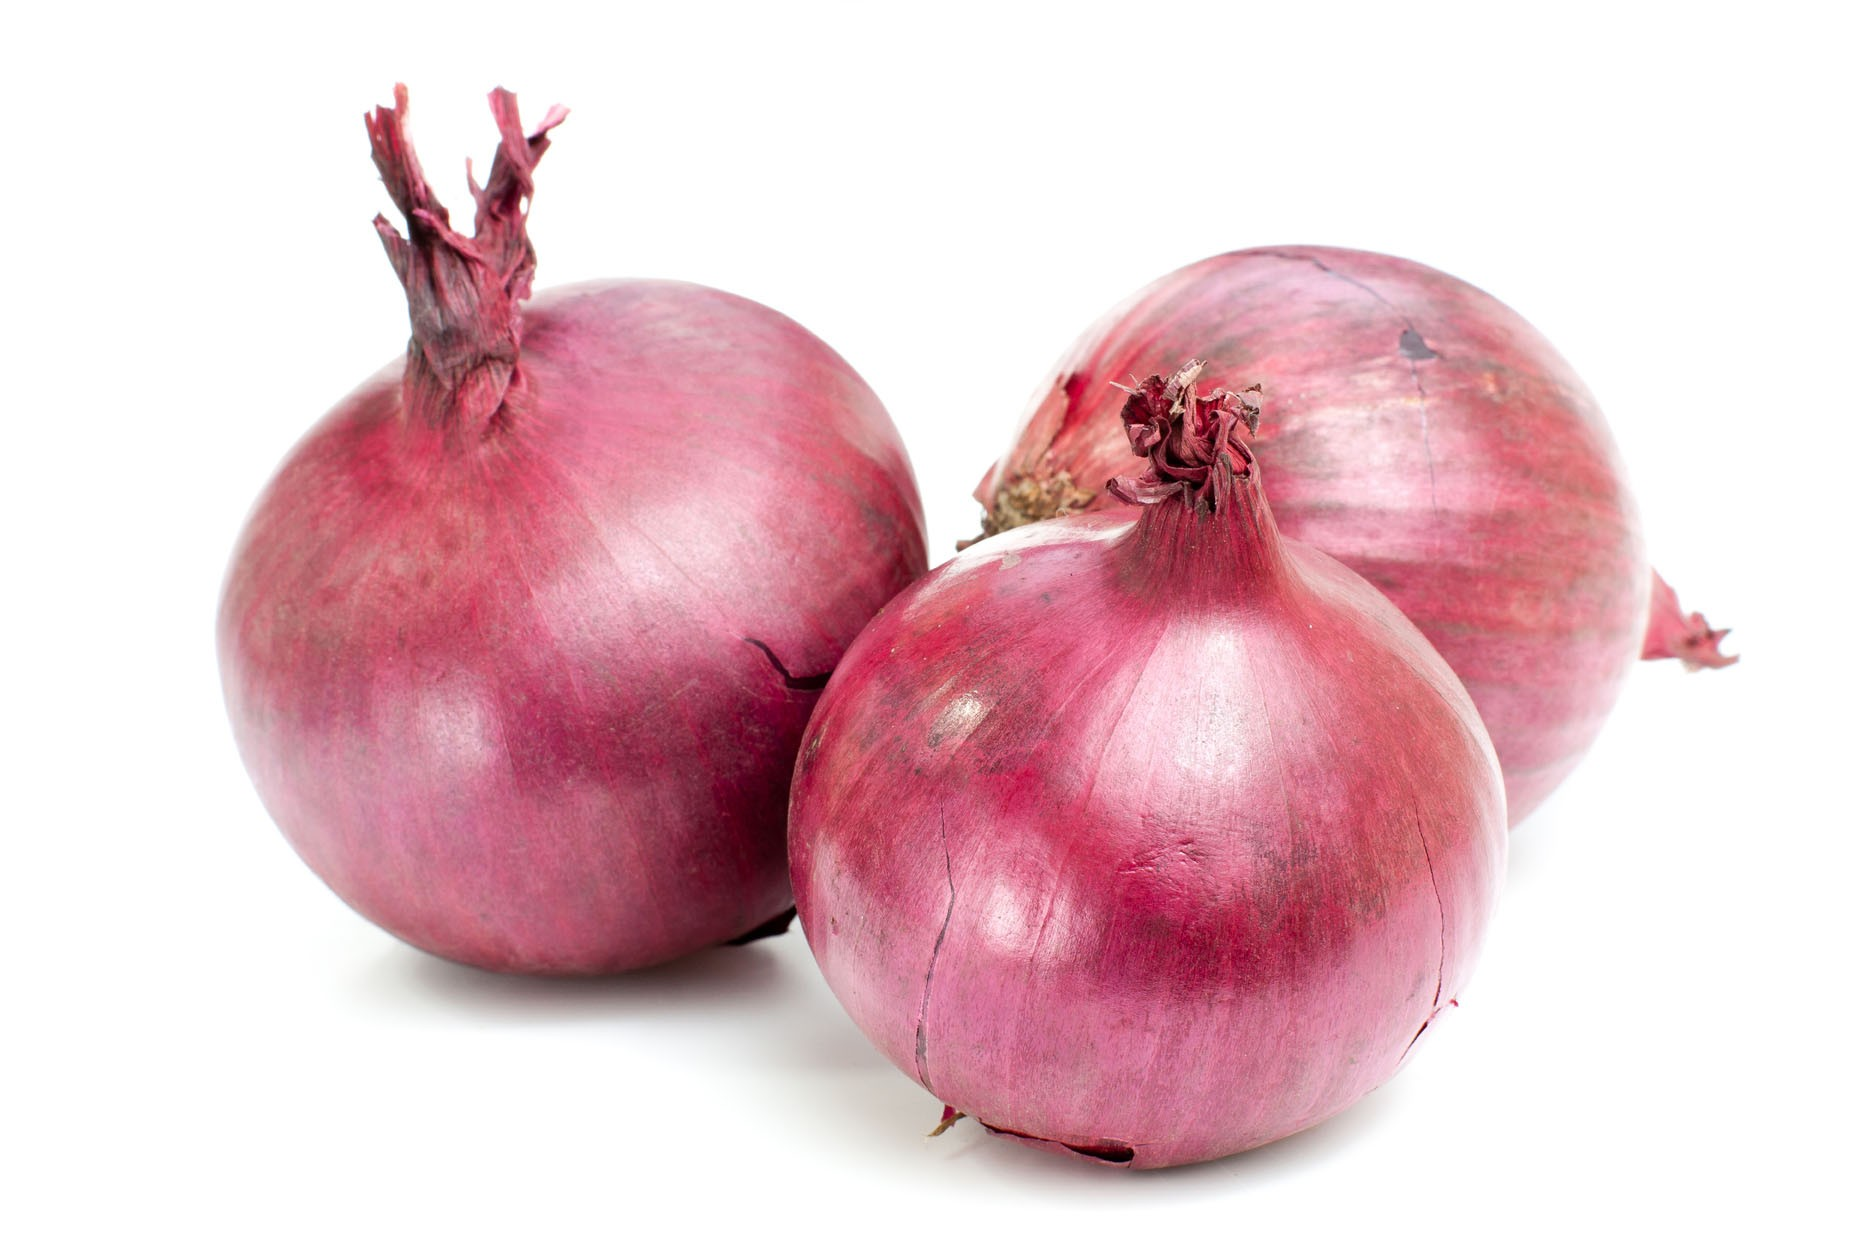 Red Onion Wallpaper 195.88 Kb